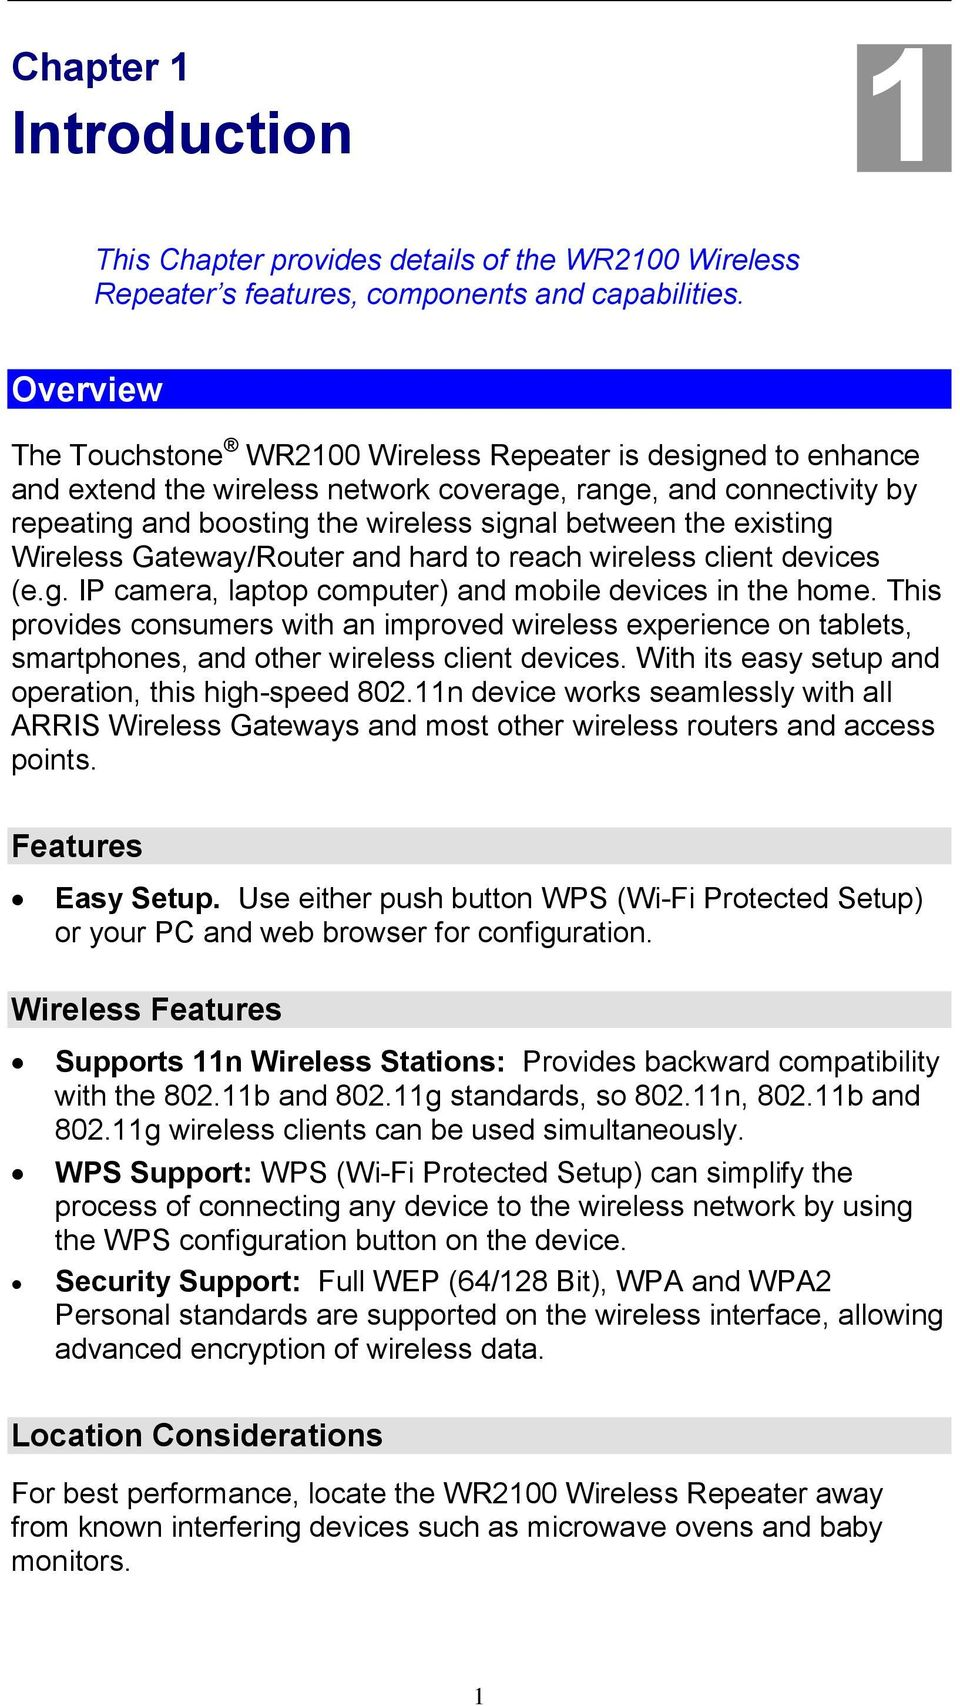 existing Wireless Gateway/Router and hard to reach wireless client devices (e.g. IP camera, laptop computer) and mobile devices in the home.